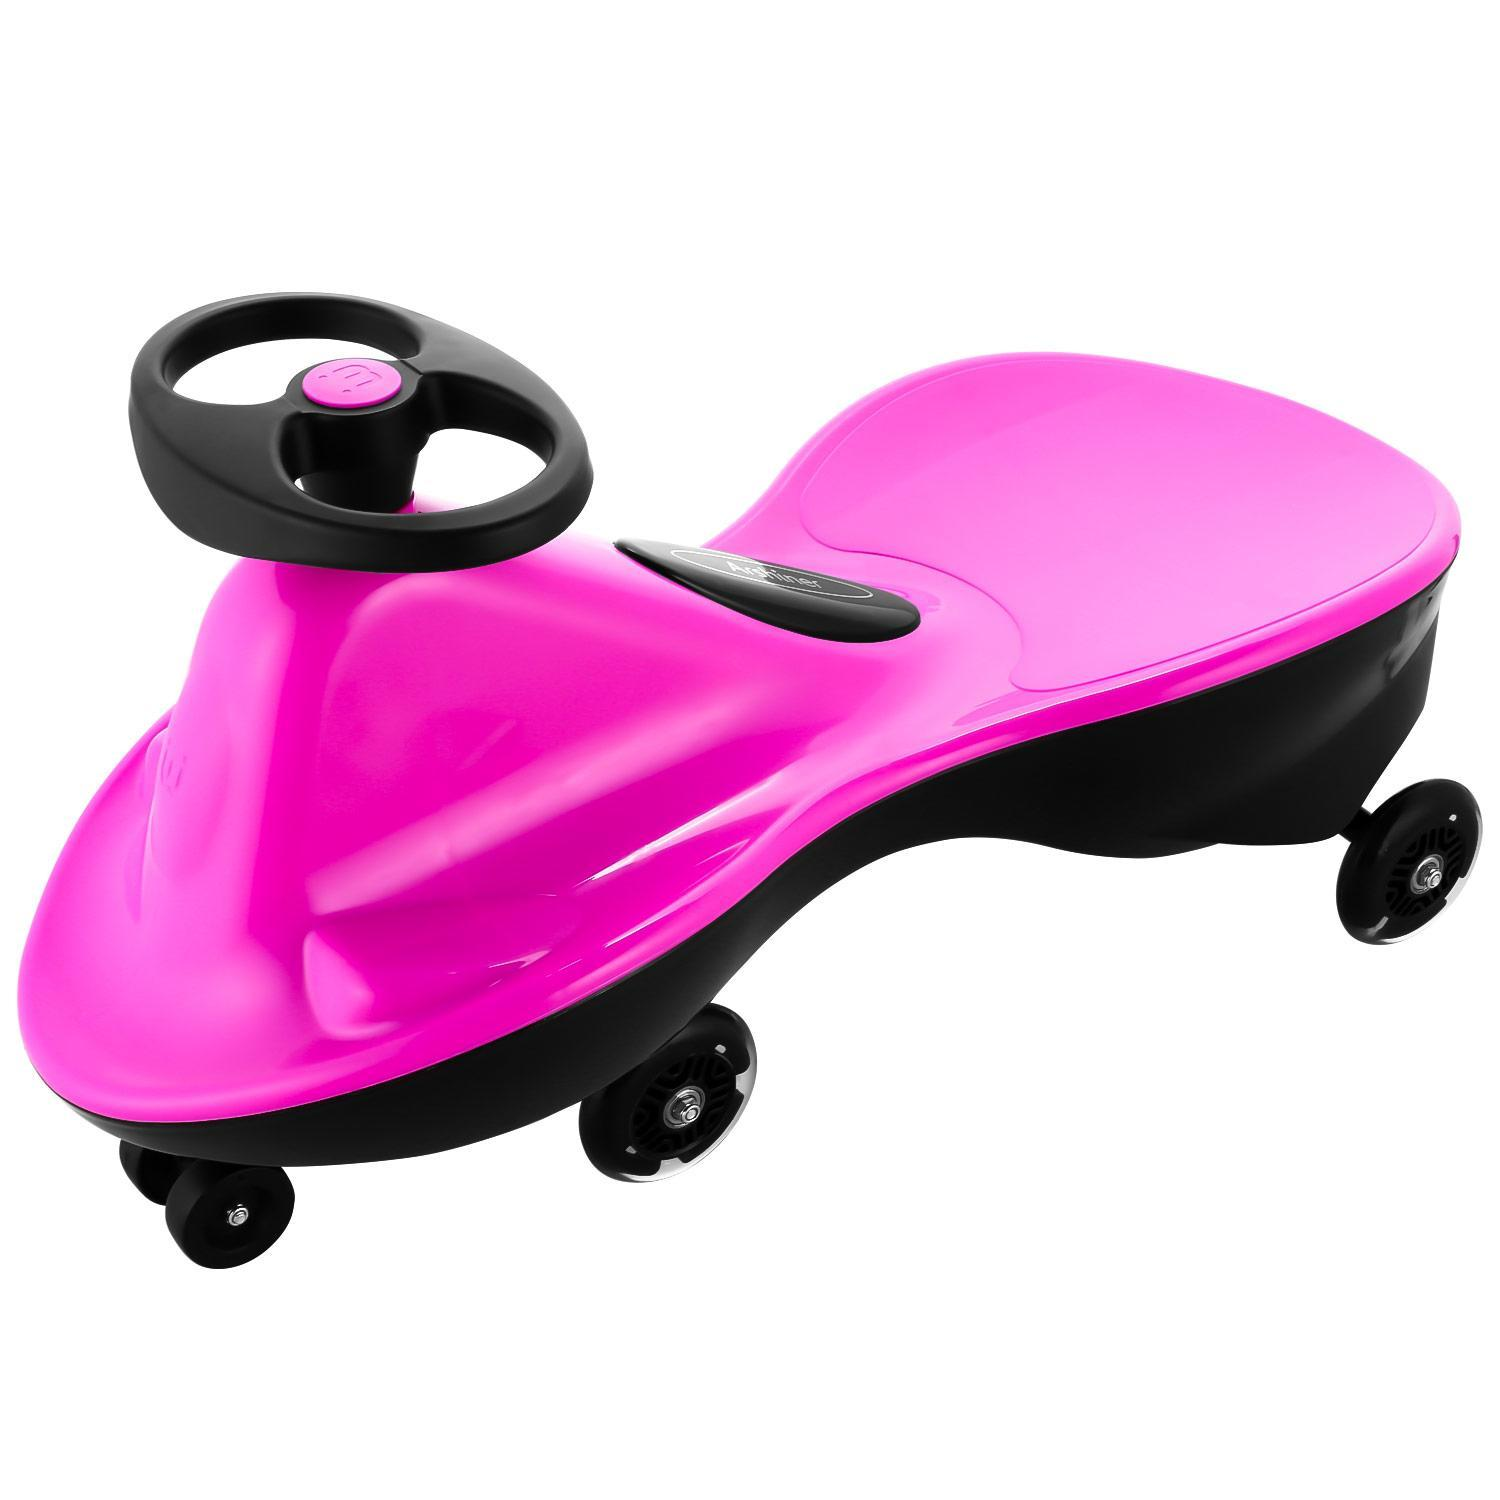 Safety Tested Plasma Cars Ride on Toys Happy Swing Car Vehicle Ride on Wiggle Car for Baby Children Kids